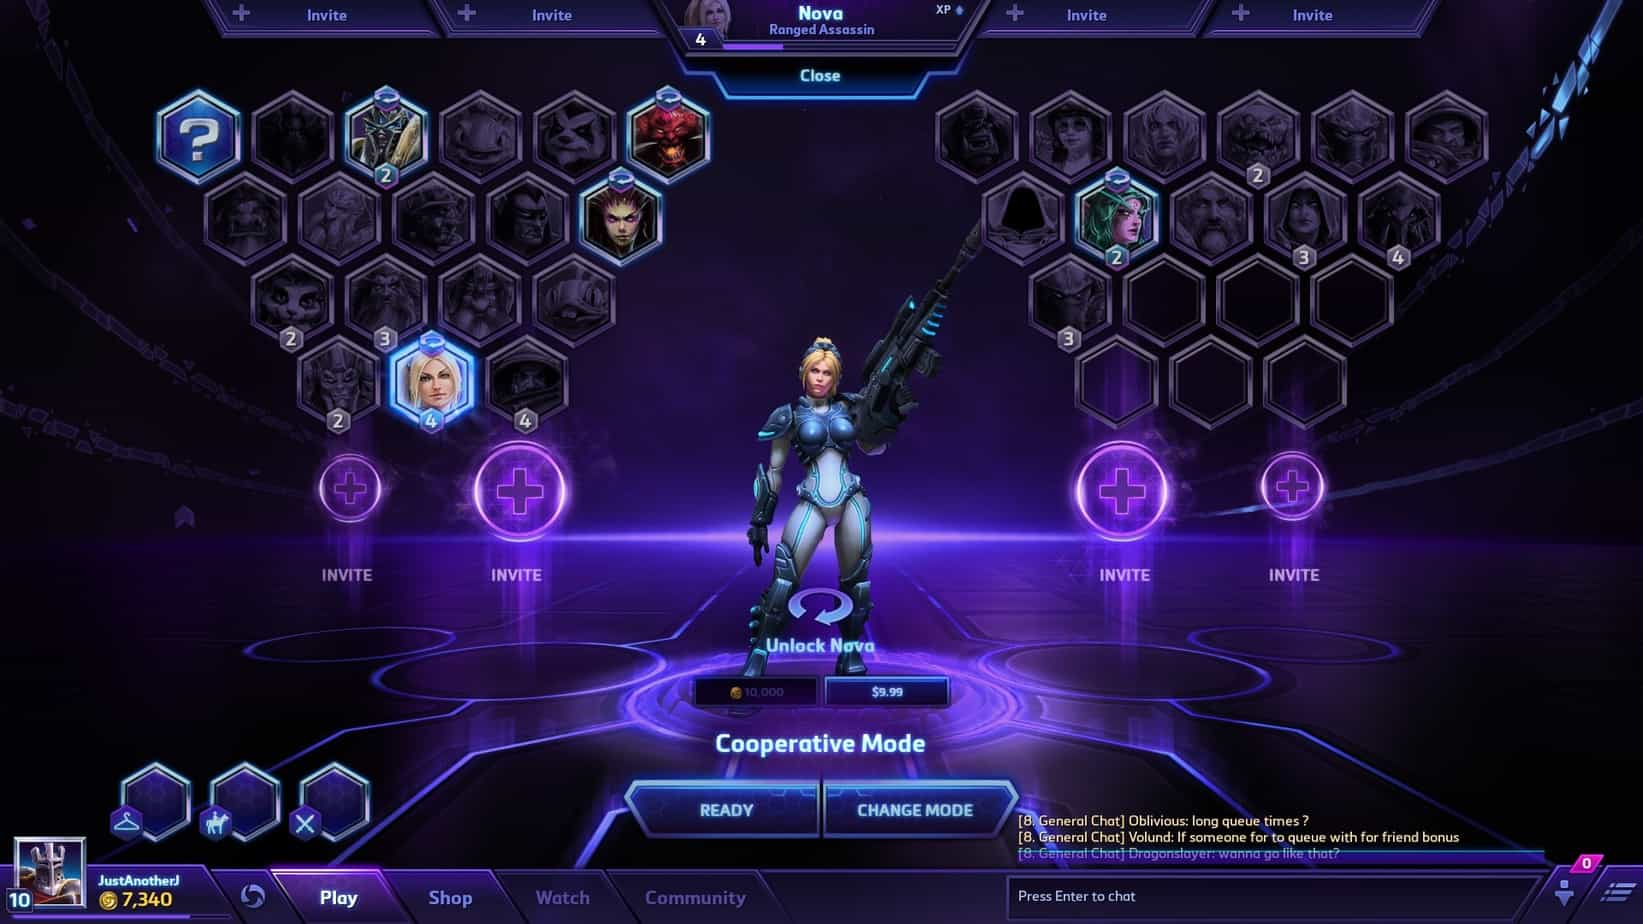 Heroes-of-the-Storm-character-selection-screen